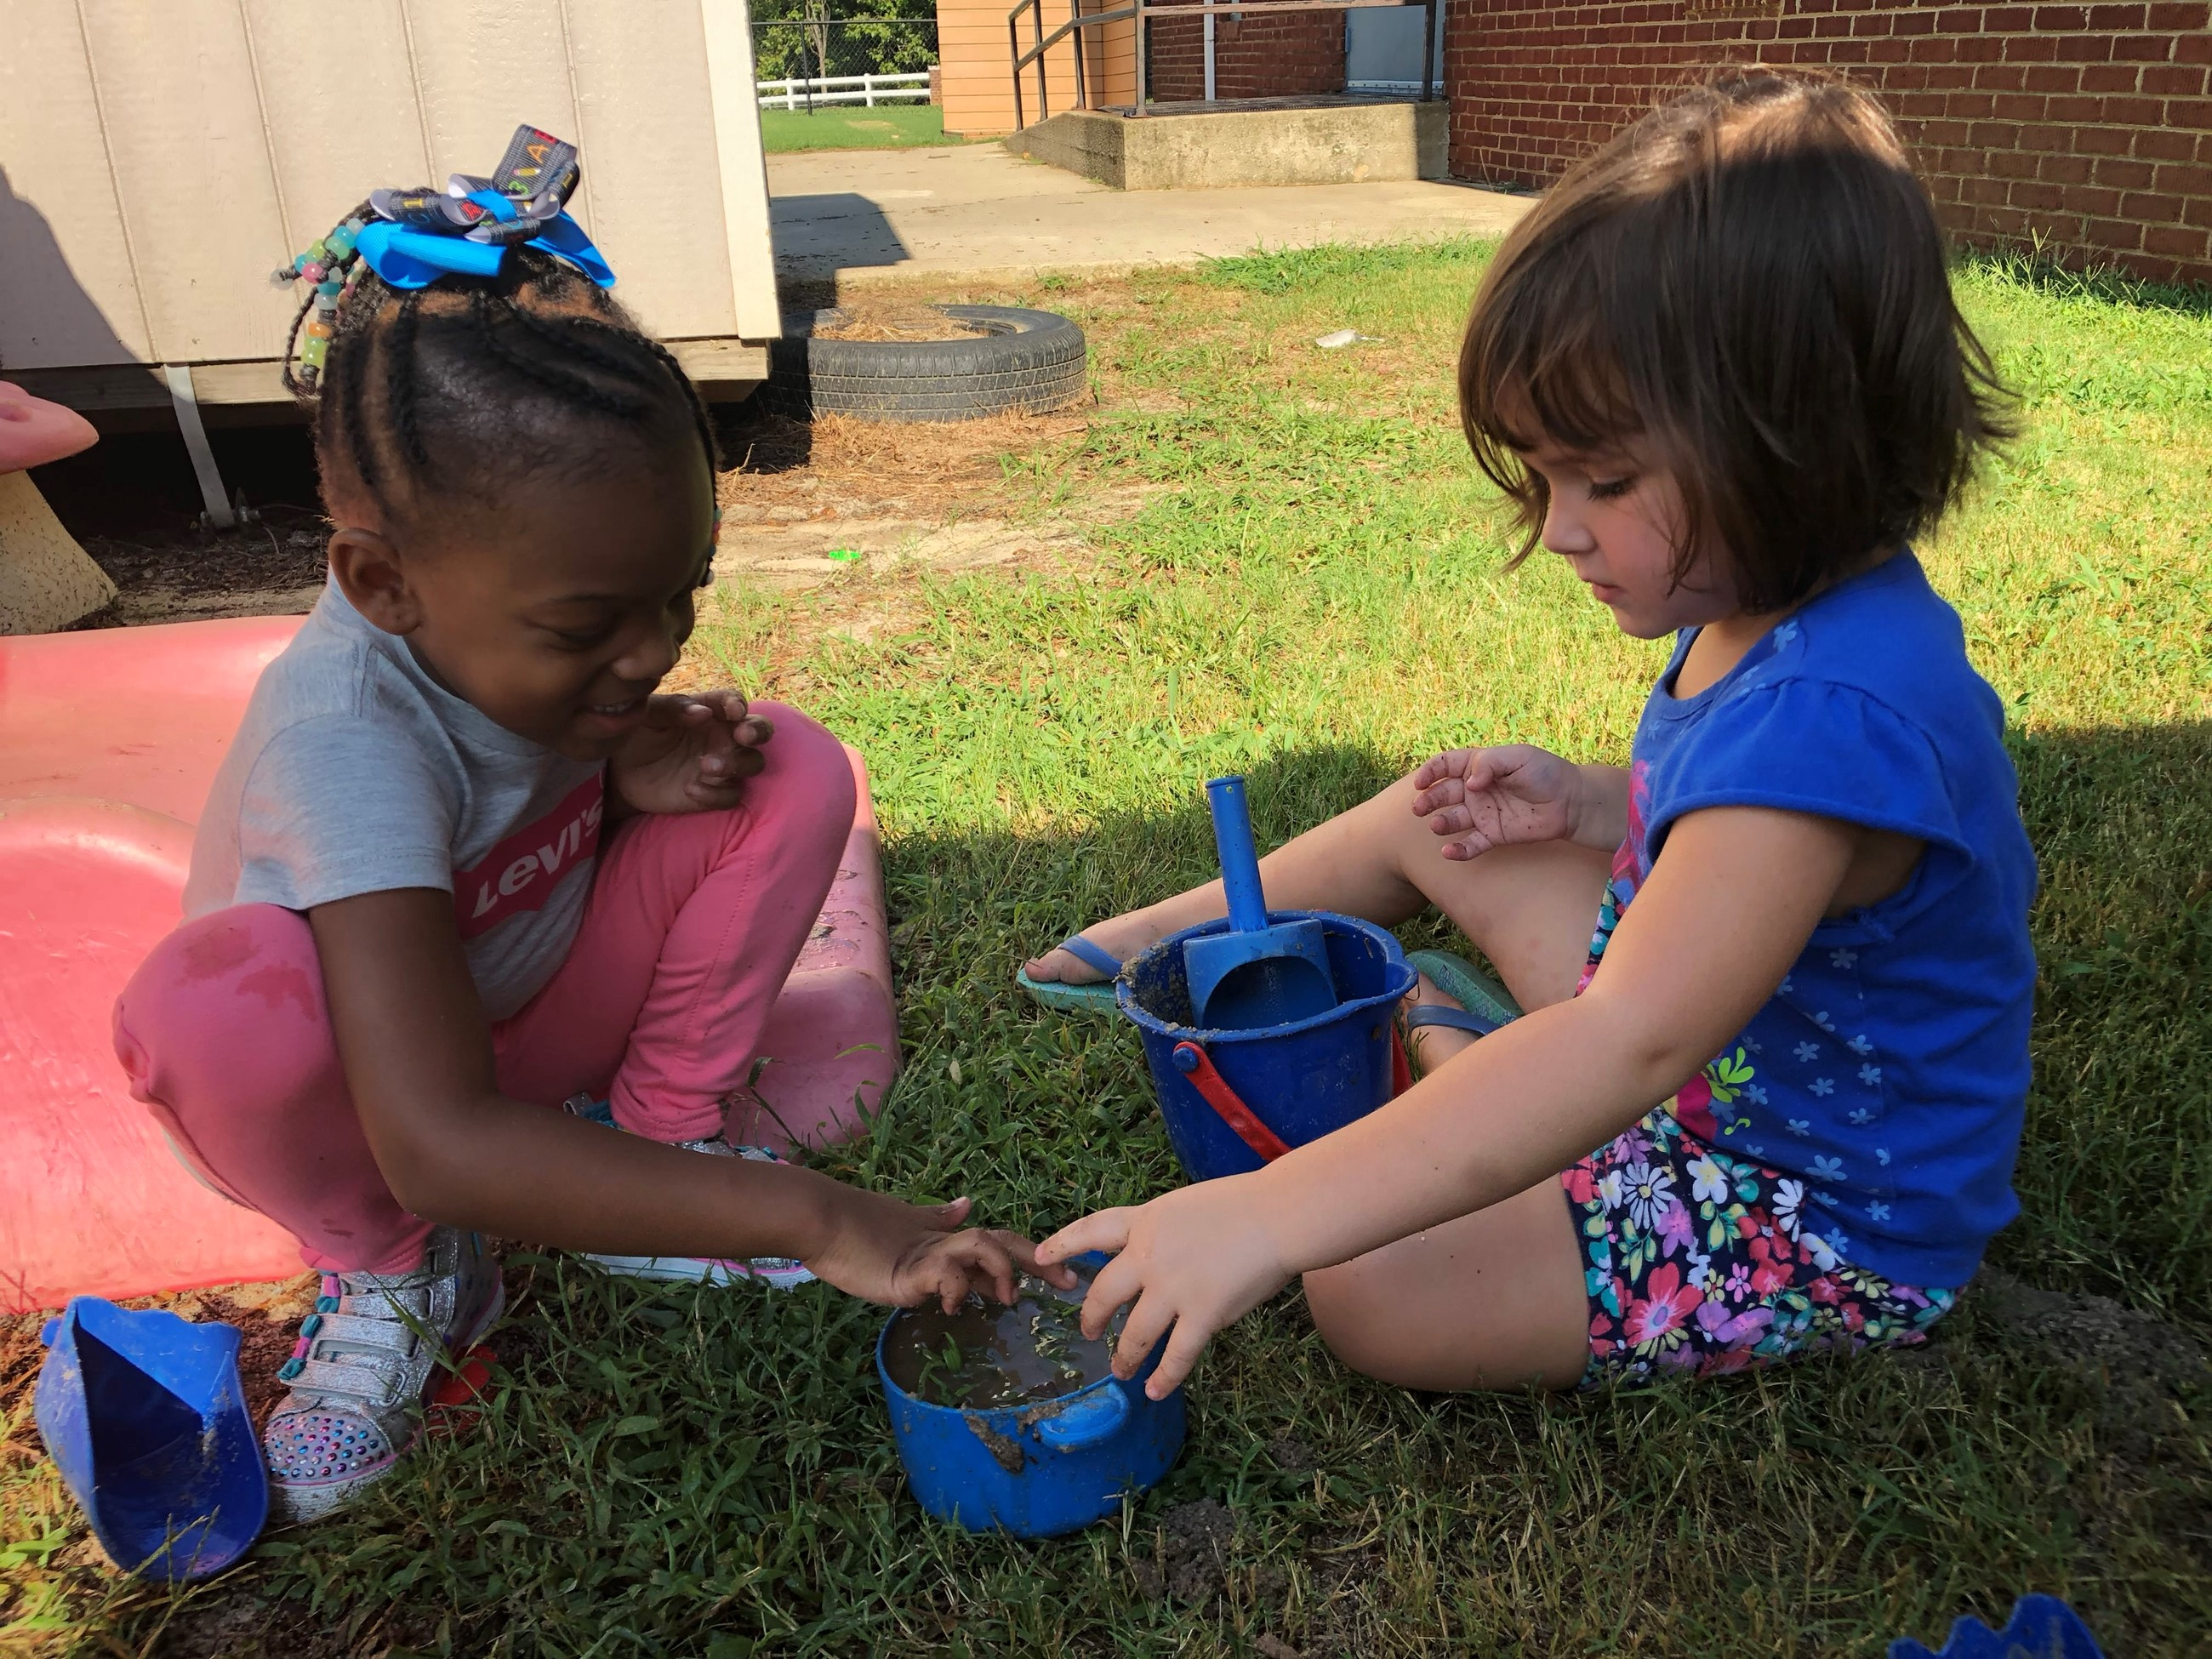 Playing in the Outdoor Learning Environment